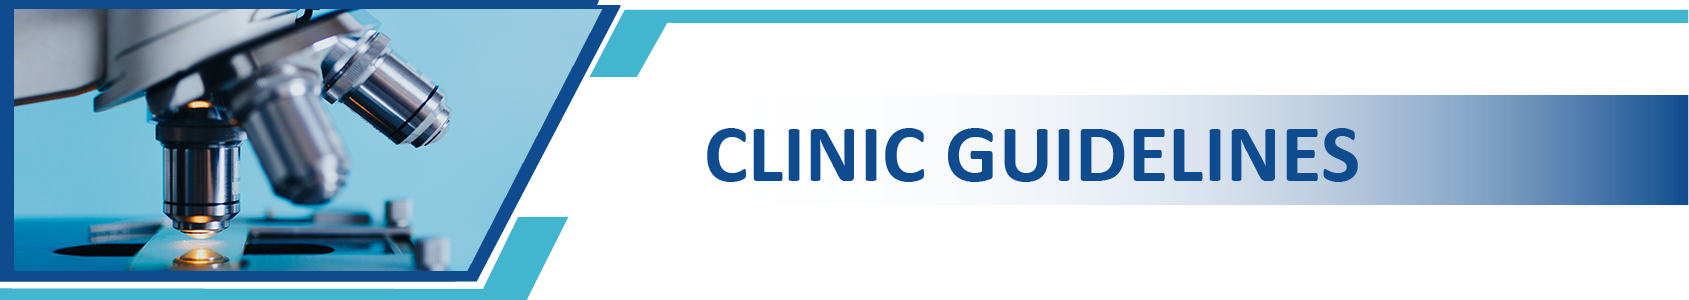 CAIPA - Clinic Guidelines